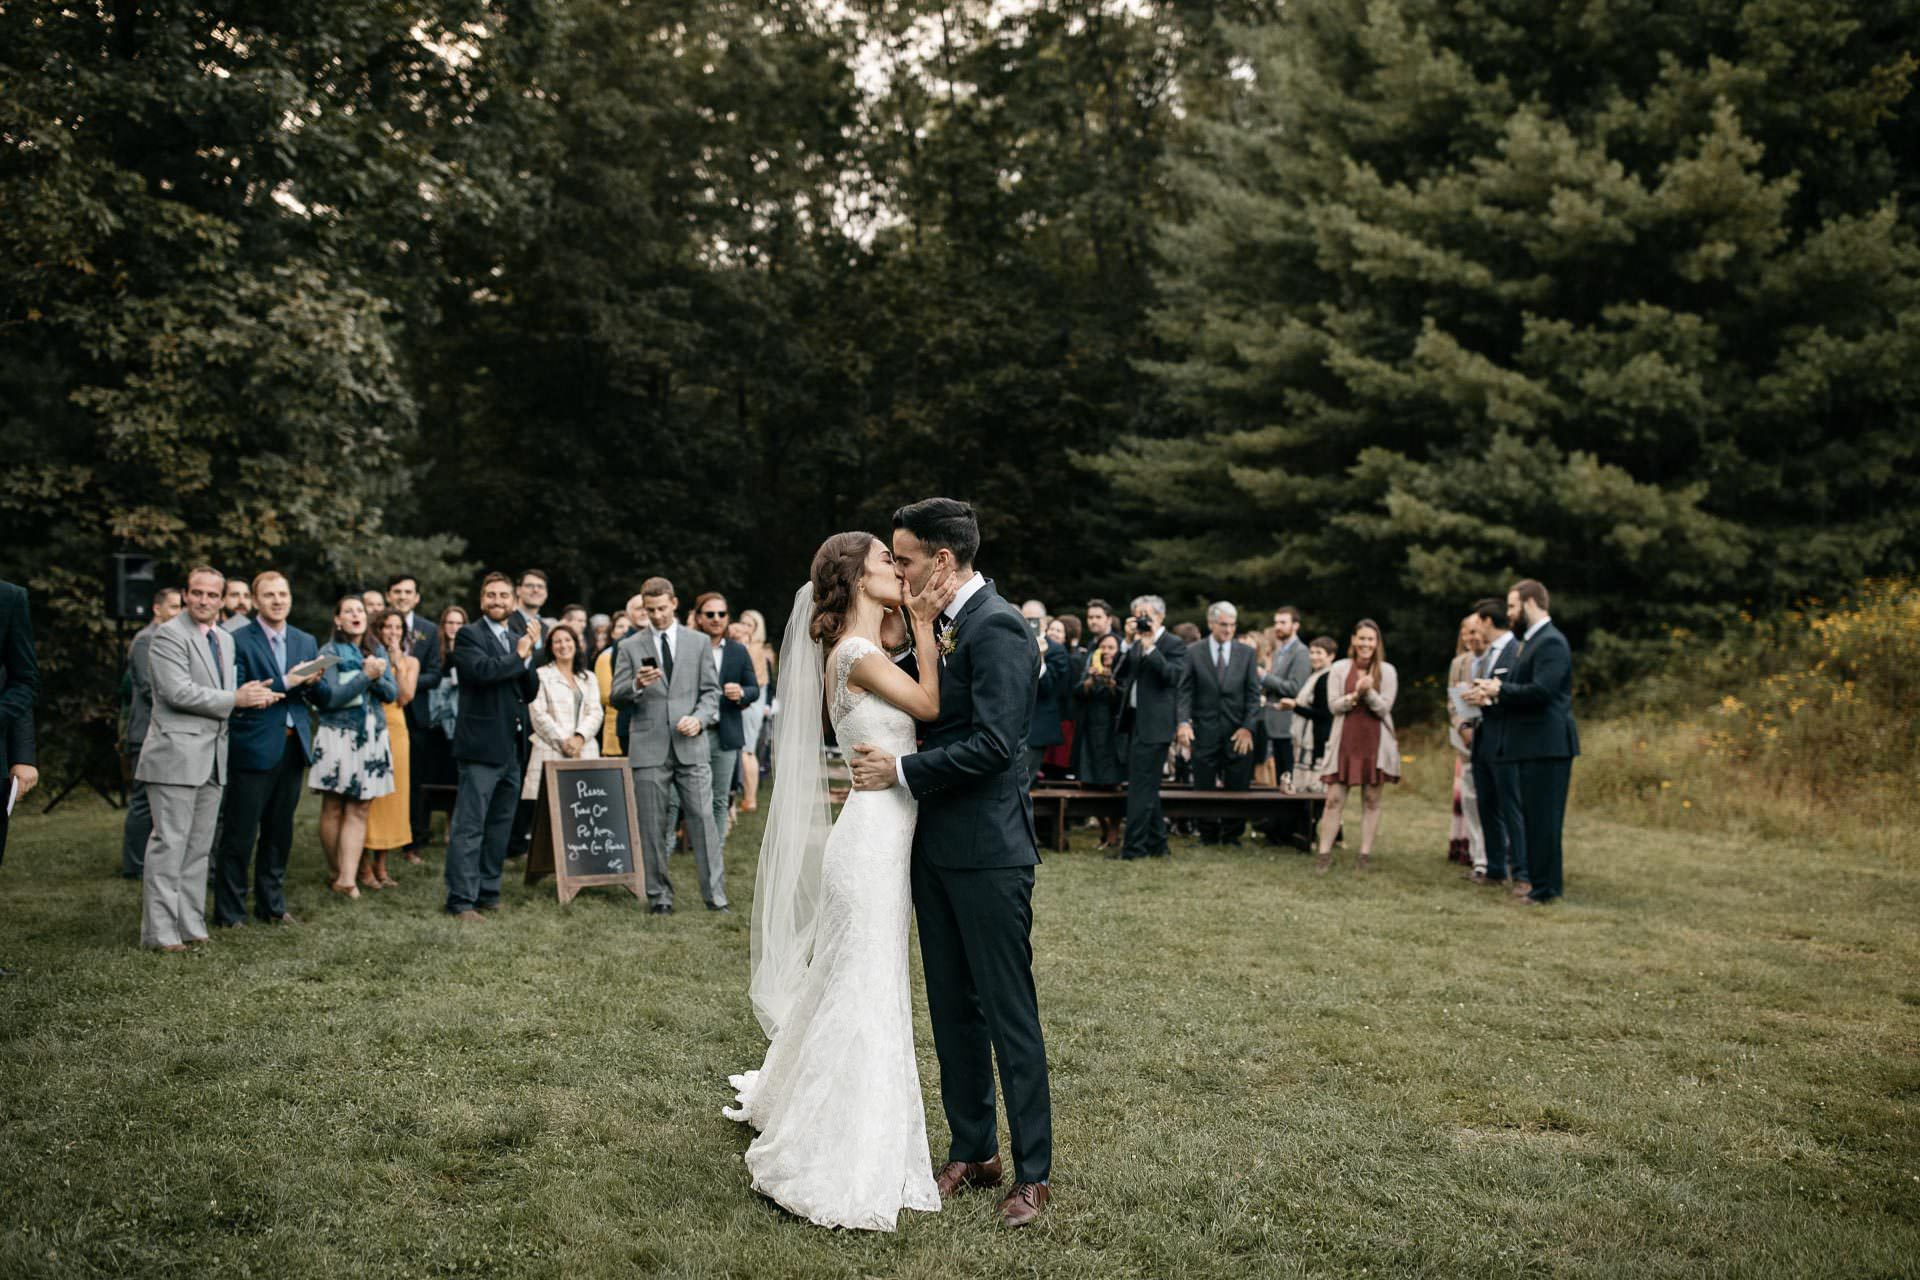 Isabel & Robbie Romantic Wedding in The Catskills . Mount Tremper Arts Center, NY